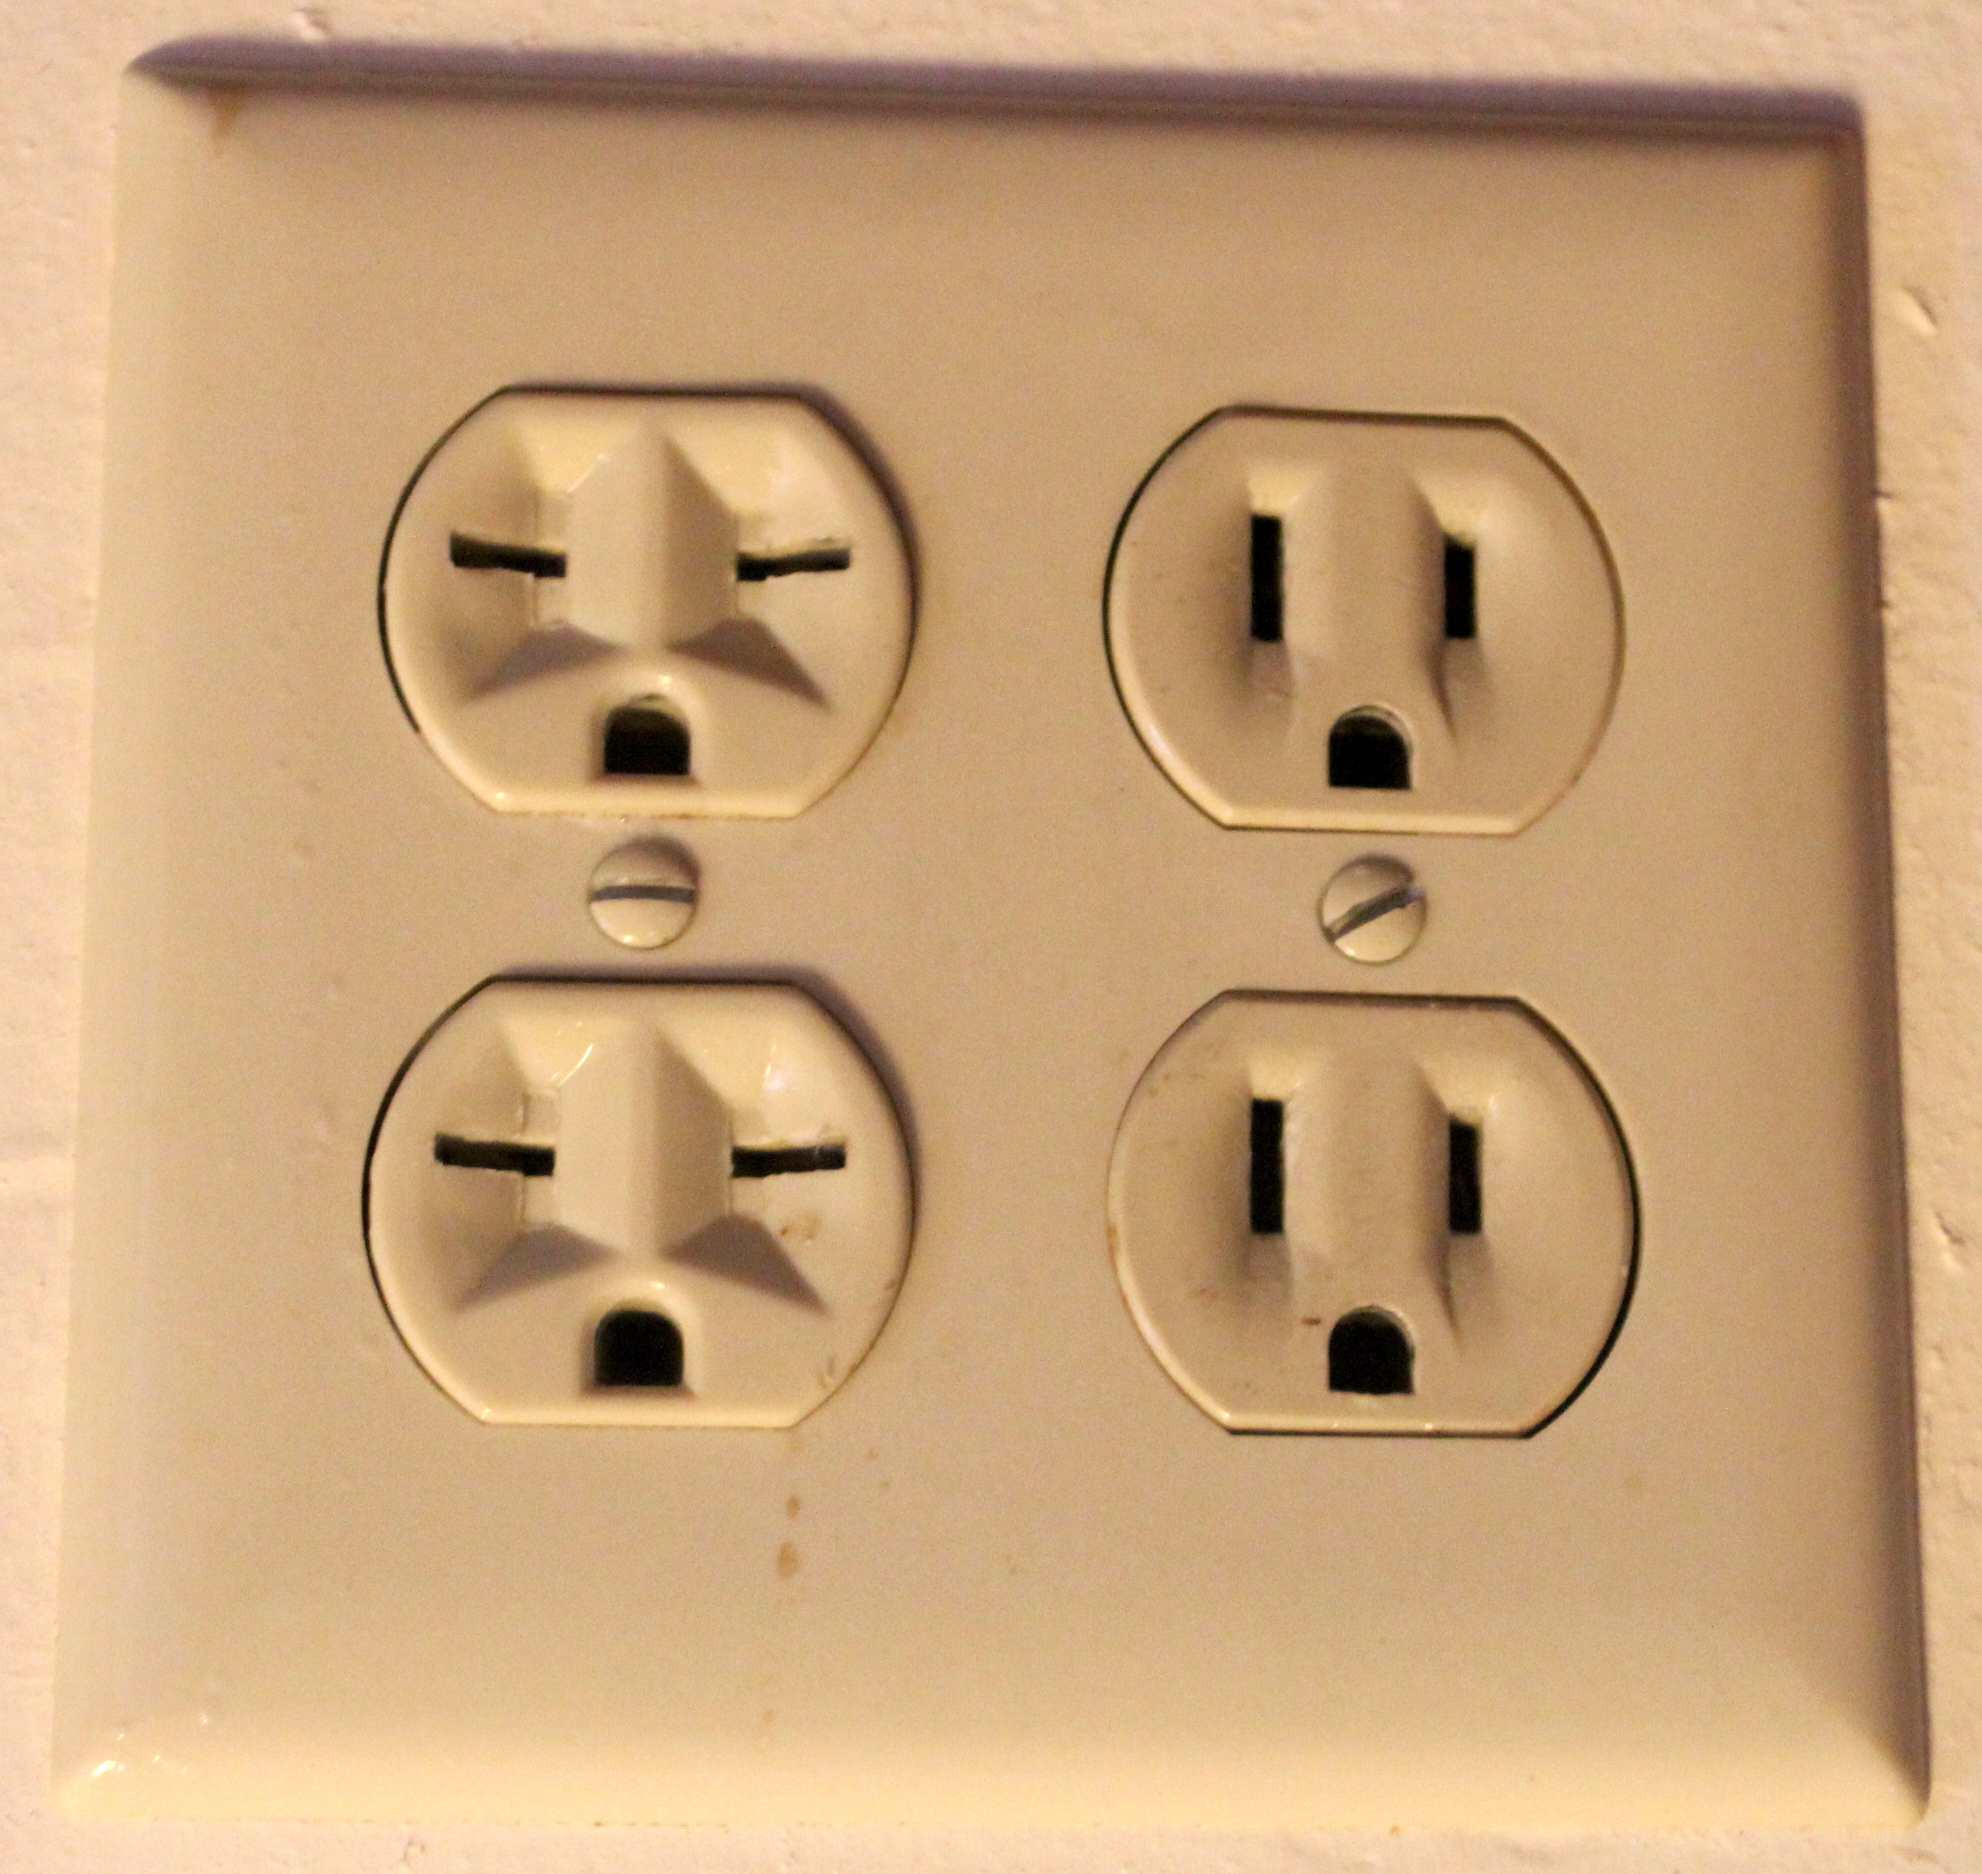 DC Direct Current Power outlets